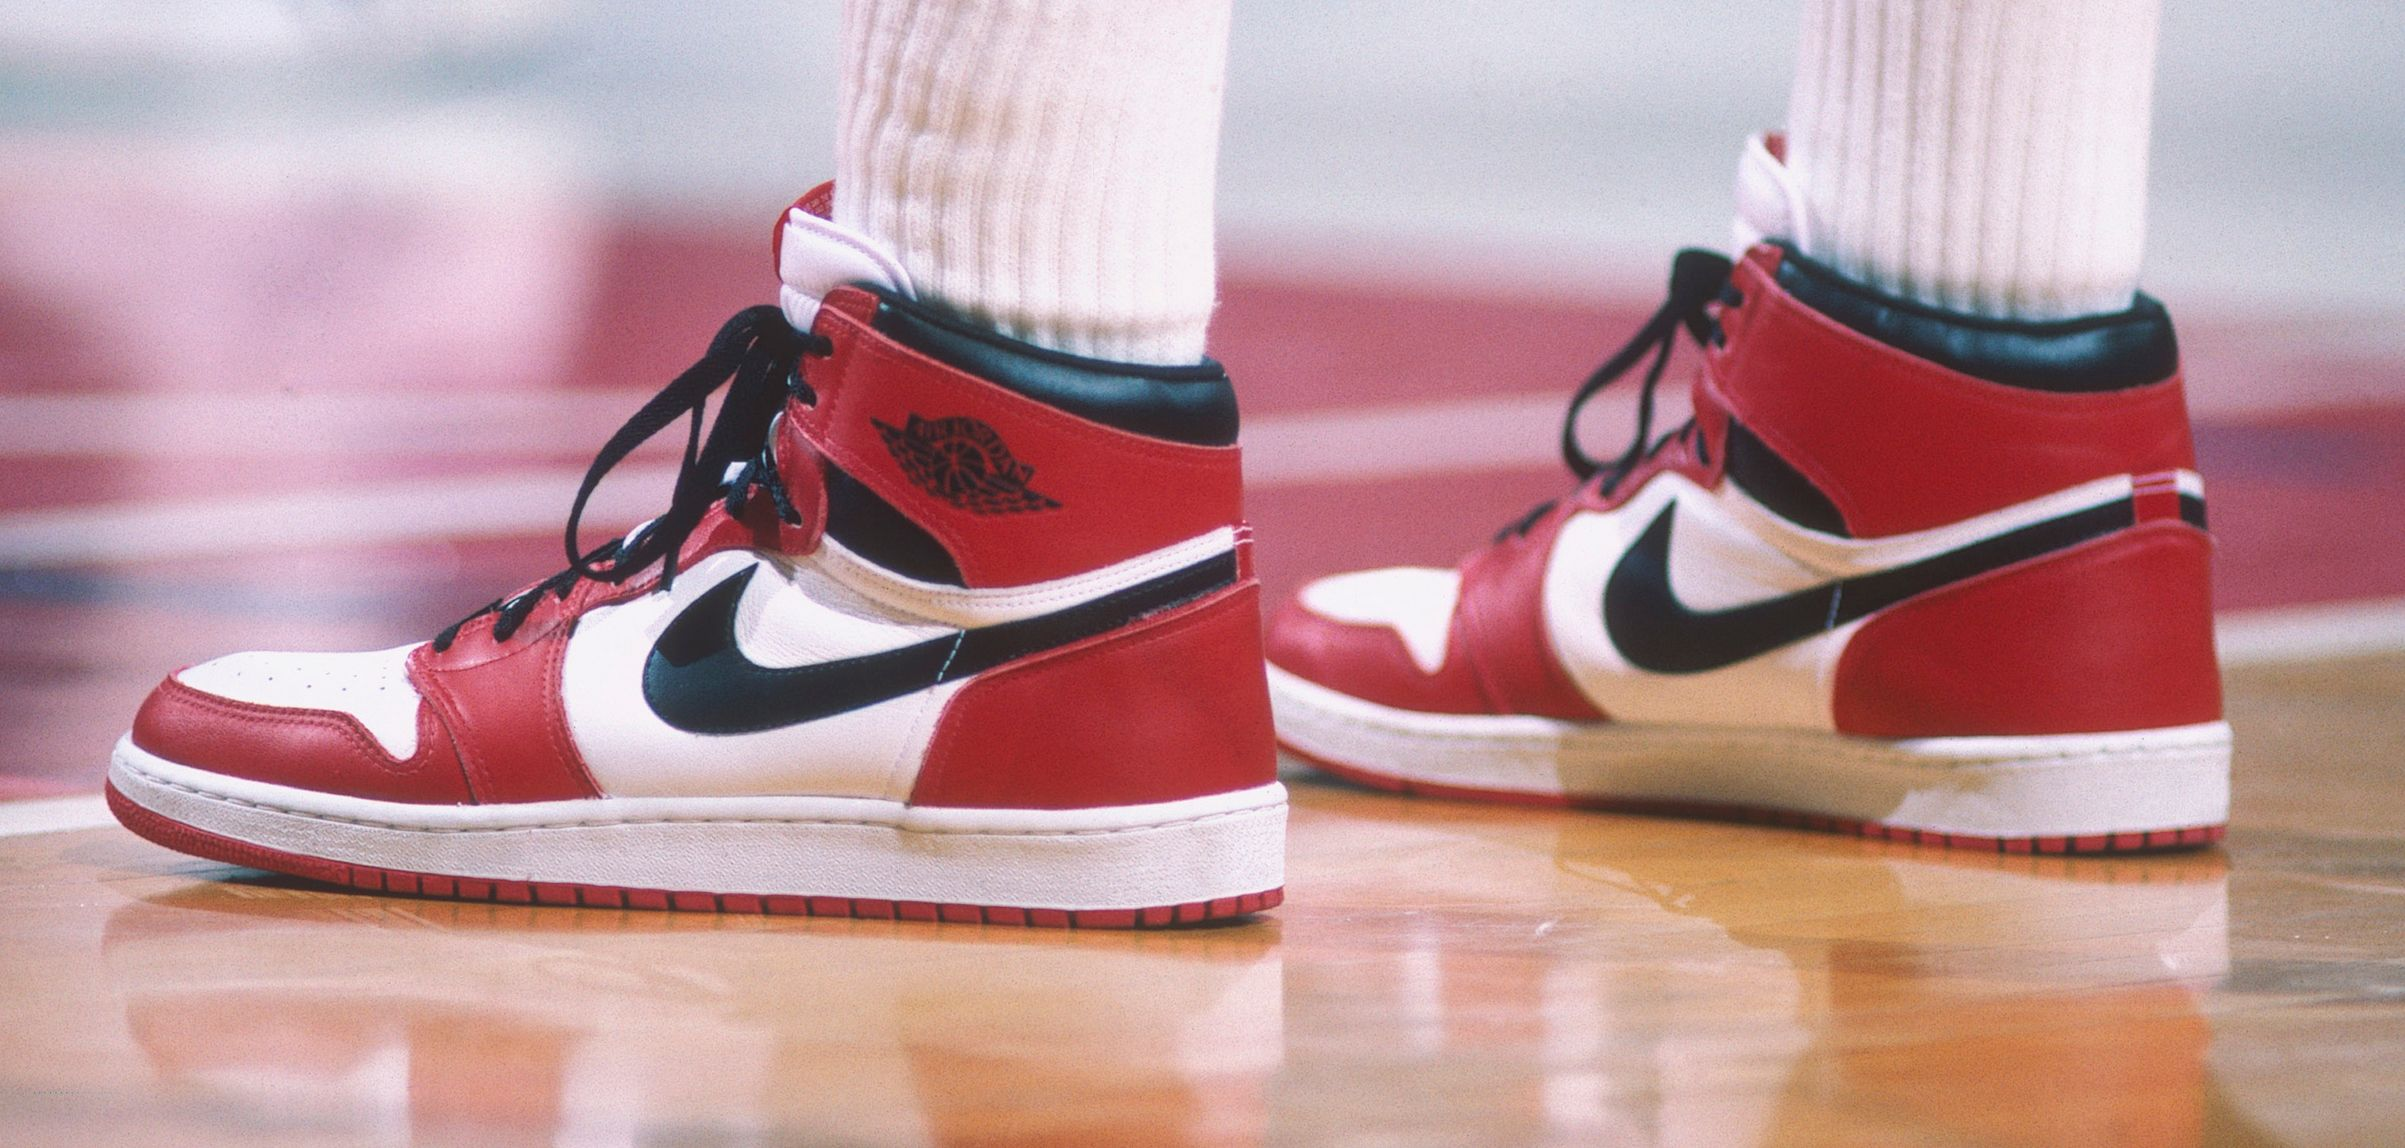 The Strange History of the Air Jordan 1